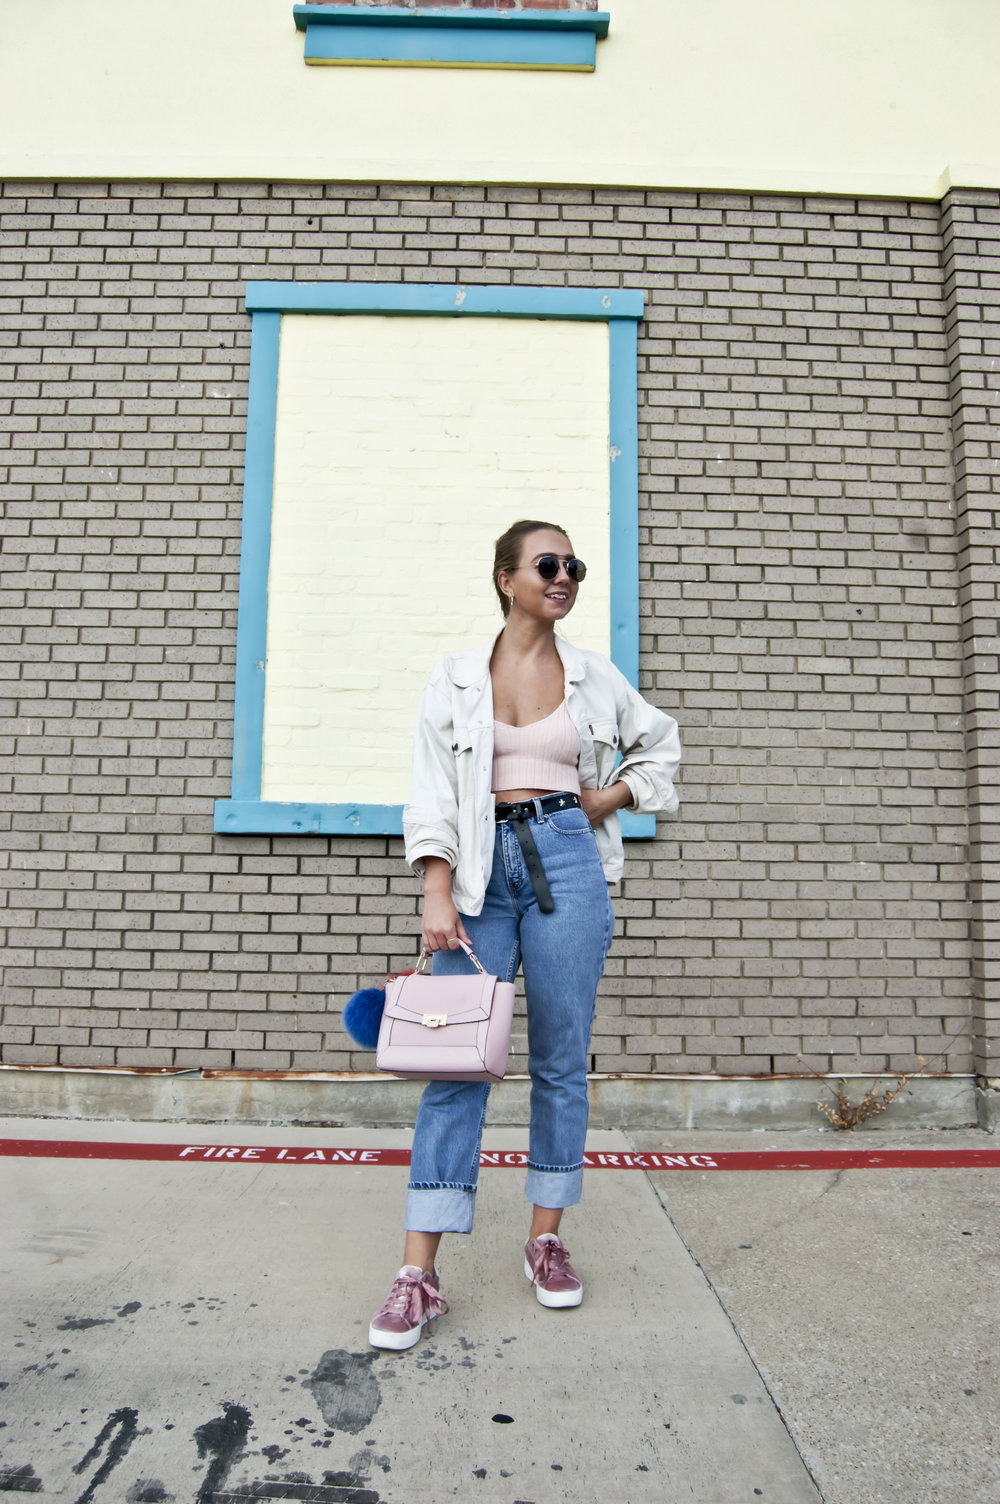 I am wearing sunglasses from Sprouts, find similar here // crop top from Zaful.com, find it here // my boyfriends old denim jacket, find similar here // vintage jeans, find similar here // silver hoop earrings from target, find here // bag from target, find similar here // sneakers from Steve Madden, find here // fur pom poms from Dalpaca, find here.